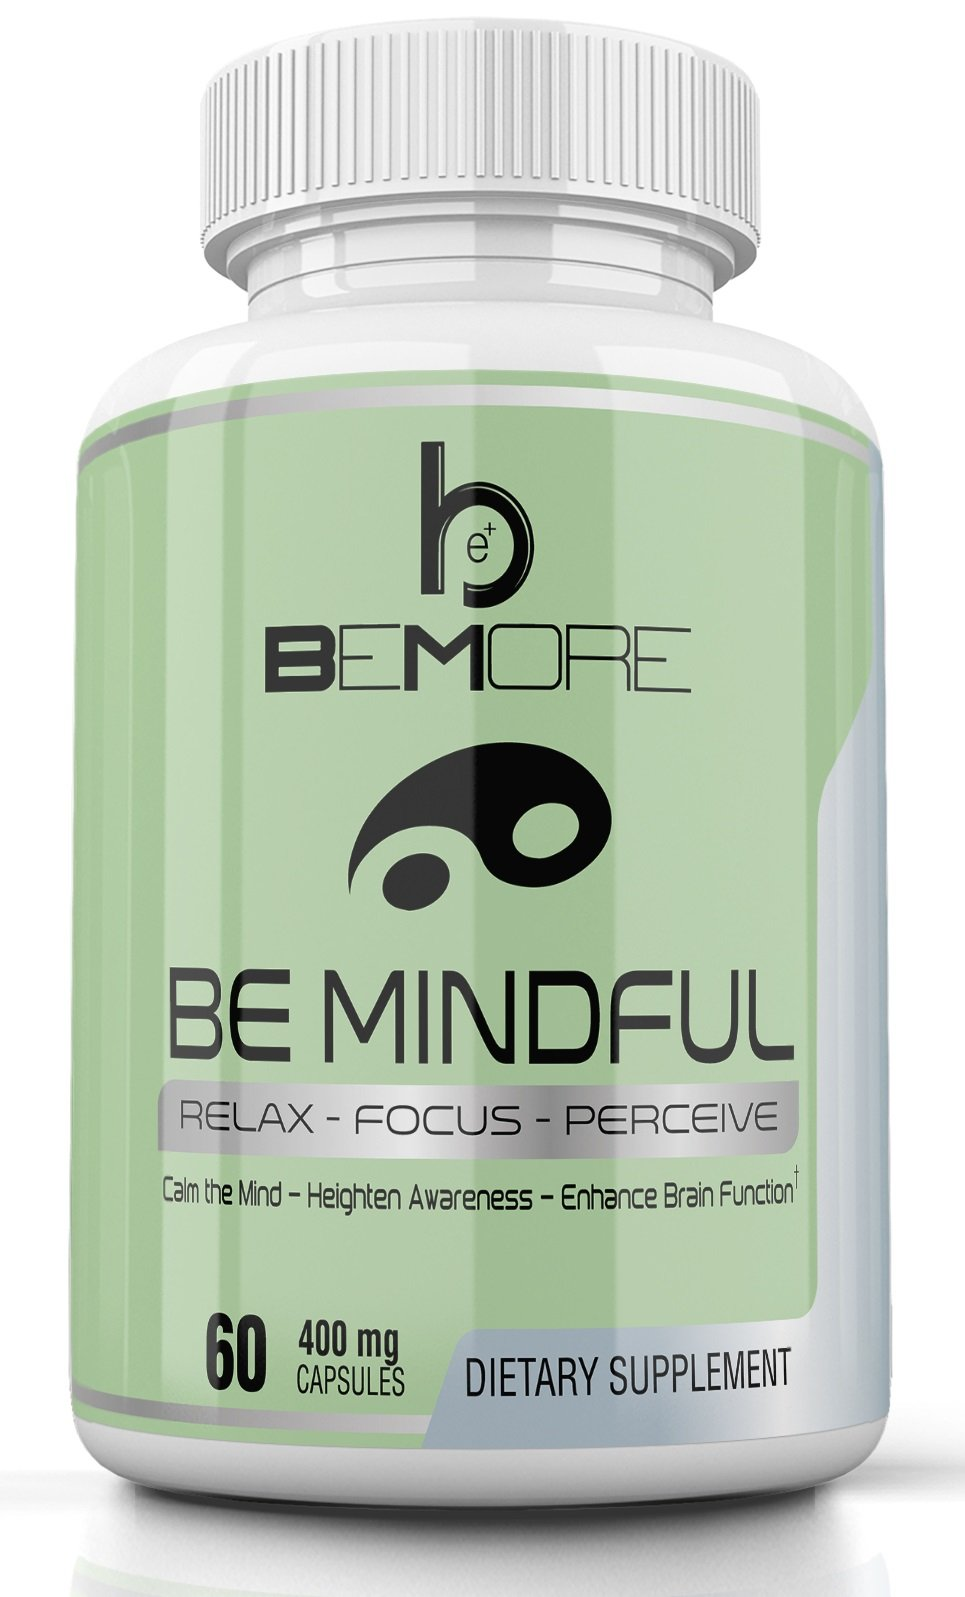 BE MINDFUL | Brain Health Supplement | Stay Alert, Keep Calm, Increase Focus, Boost Mood, Memory & Energy, Relieve Anxiety & Stress with St John's Wort, Valerian, Hops & More